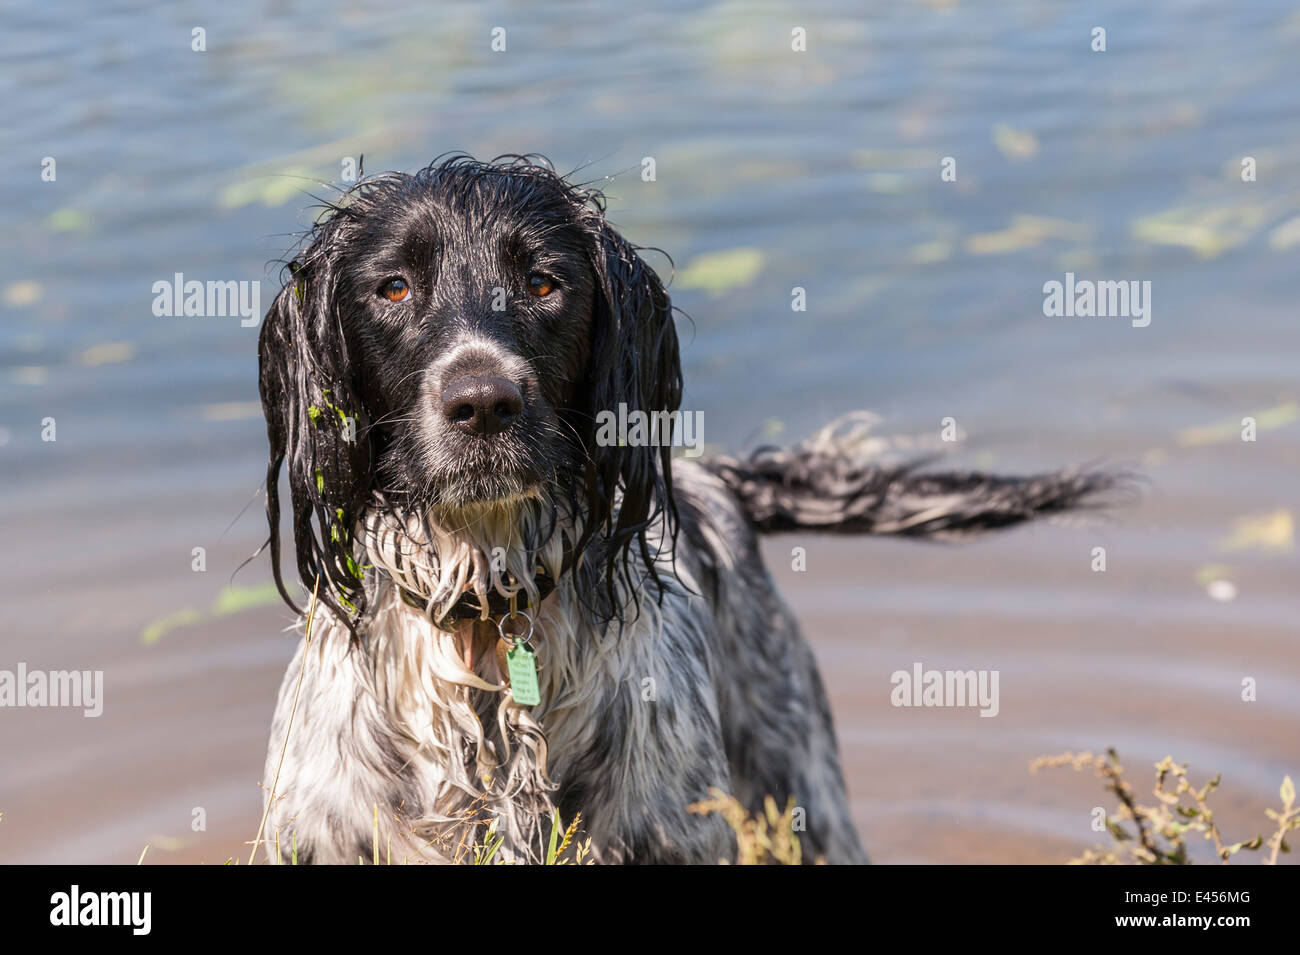 A wet 2 year old working English Springer Spaniel dog in the river water in the Uk Stock Photo